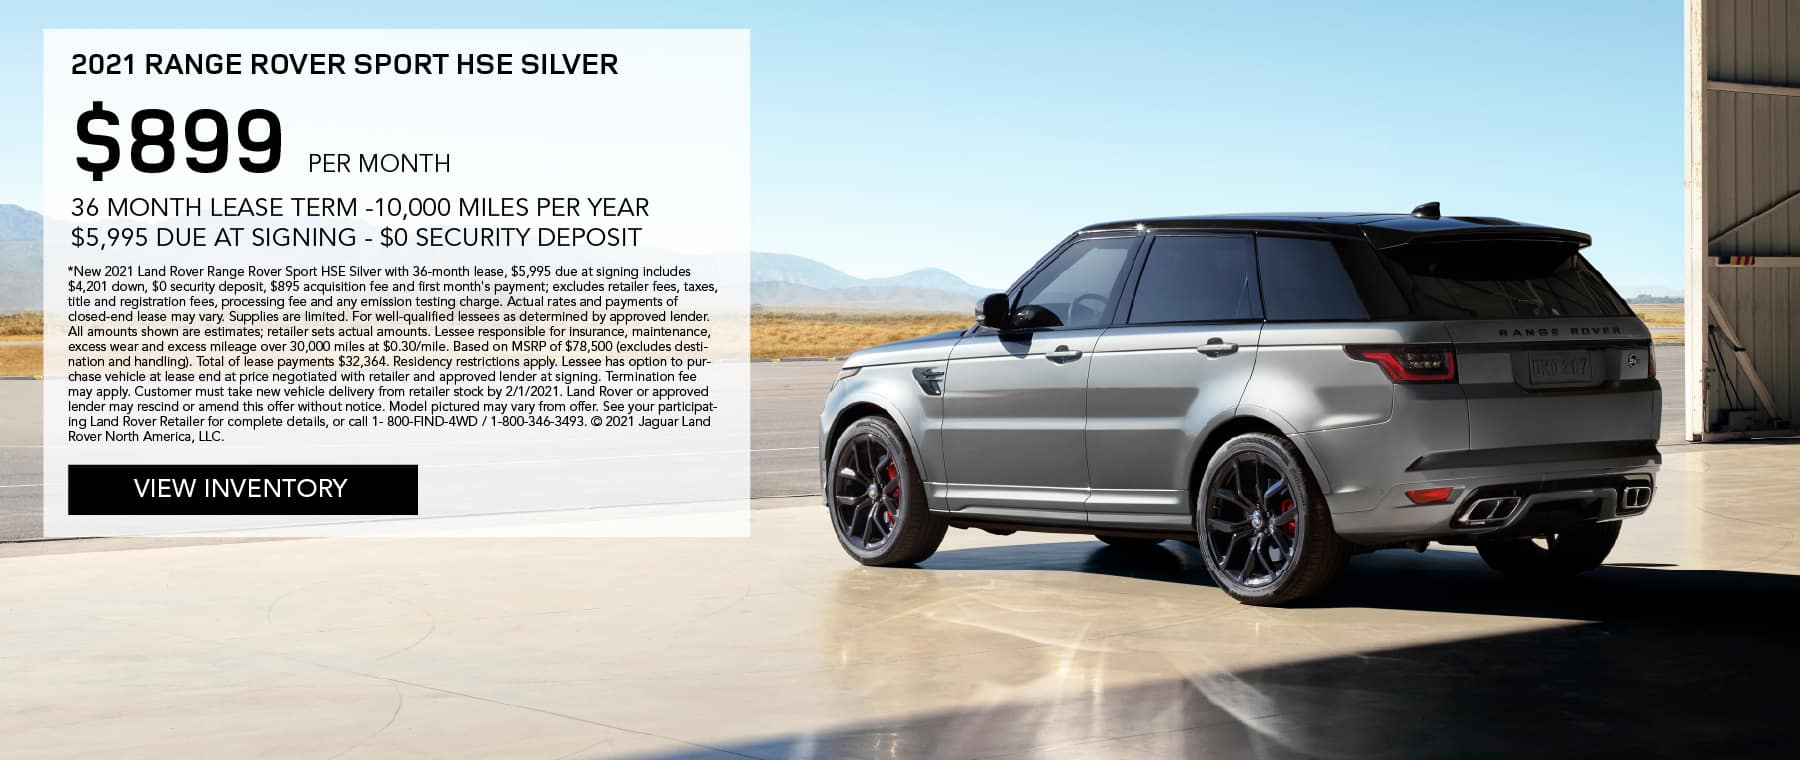 2021 RANGE ROVER SPORT HSE SILVER. $899 PER MONTH. 36 MONTH LEASE TERM. $5,995 CASH DUE AT SIGNING. $0 SECURITY DEPOSIT. 10,000 MILES PER YEAR. EXCLUDES RETAILER FEES, TAXES, TITLE AND REGISTRATION FEES, PROCESSING FEE AND ANY EMISSION TESTING CHARGE. ENDS 2/1/2021. VIEW INVENTORY. SILVER RANGE ROVER SPORT PARKED IN AIRPLANE HANGER.